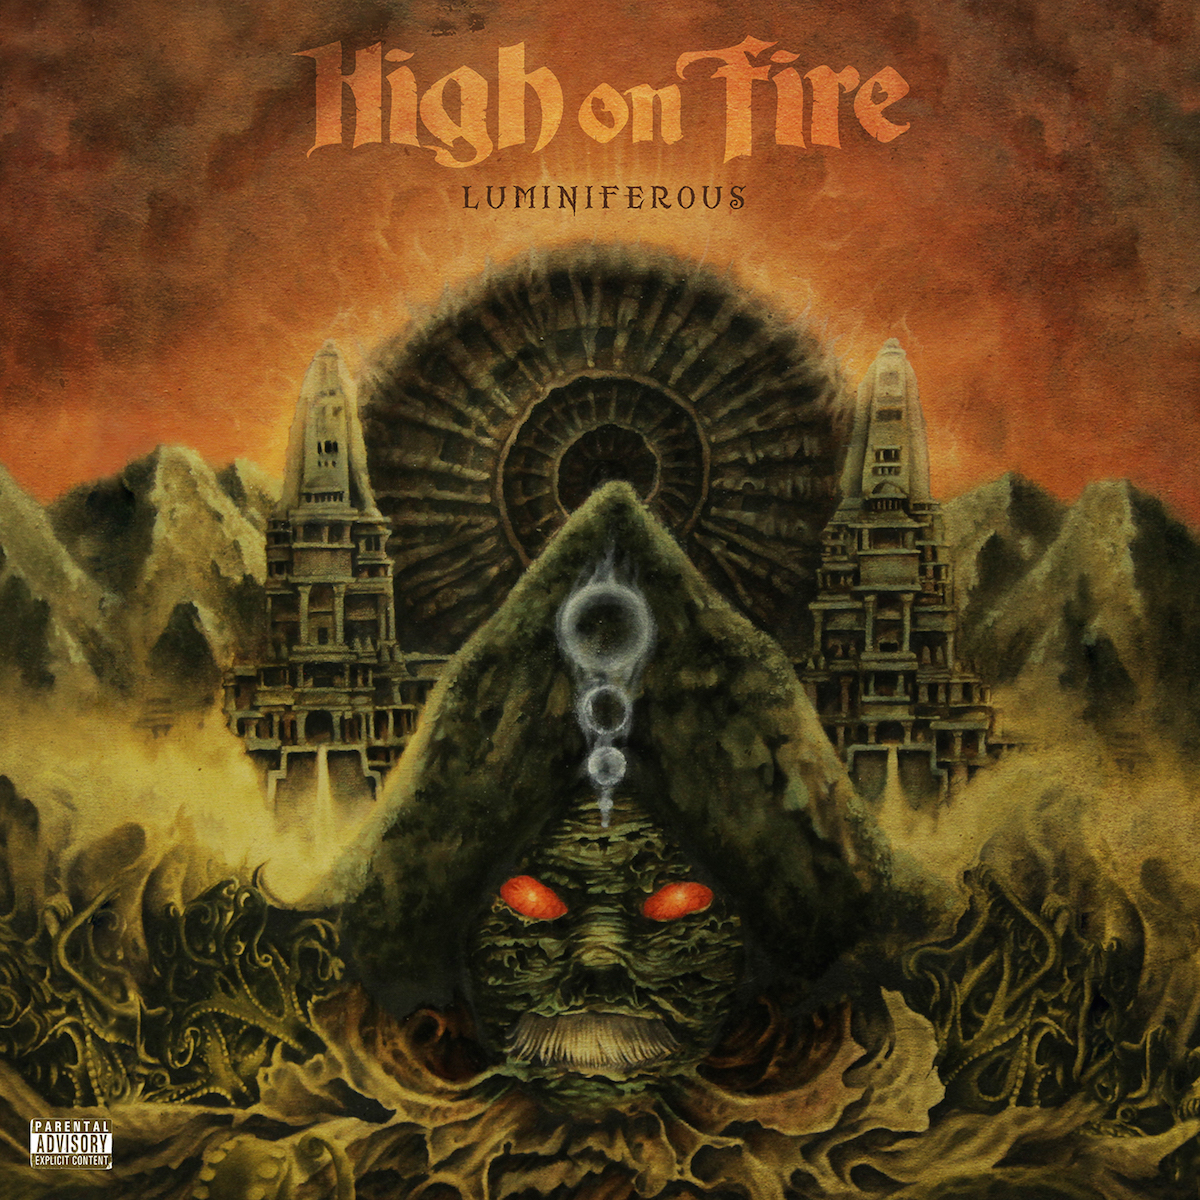 HIGH ON FIRE Luminiferous – Vinyl 2xLP (black) + CD